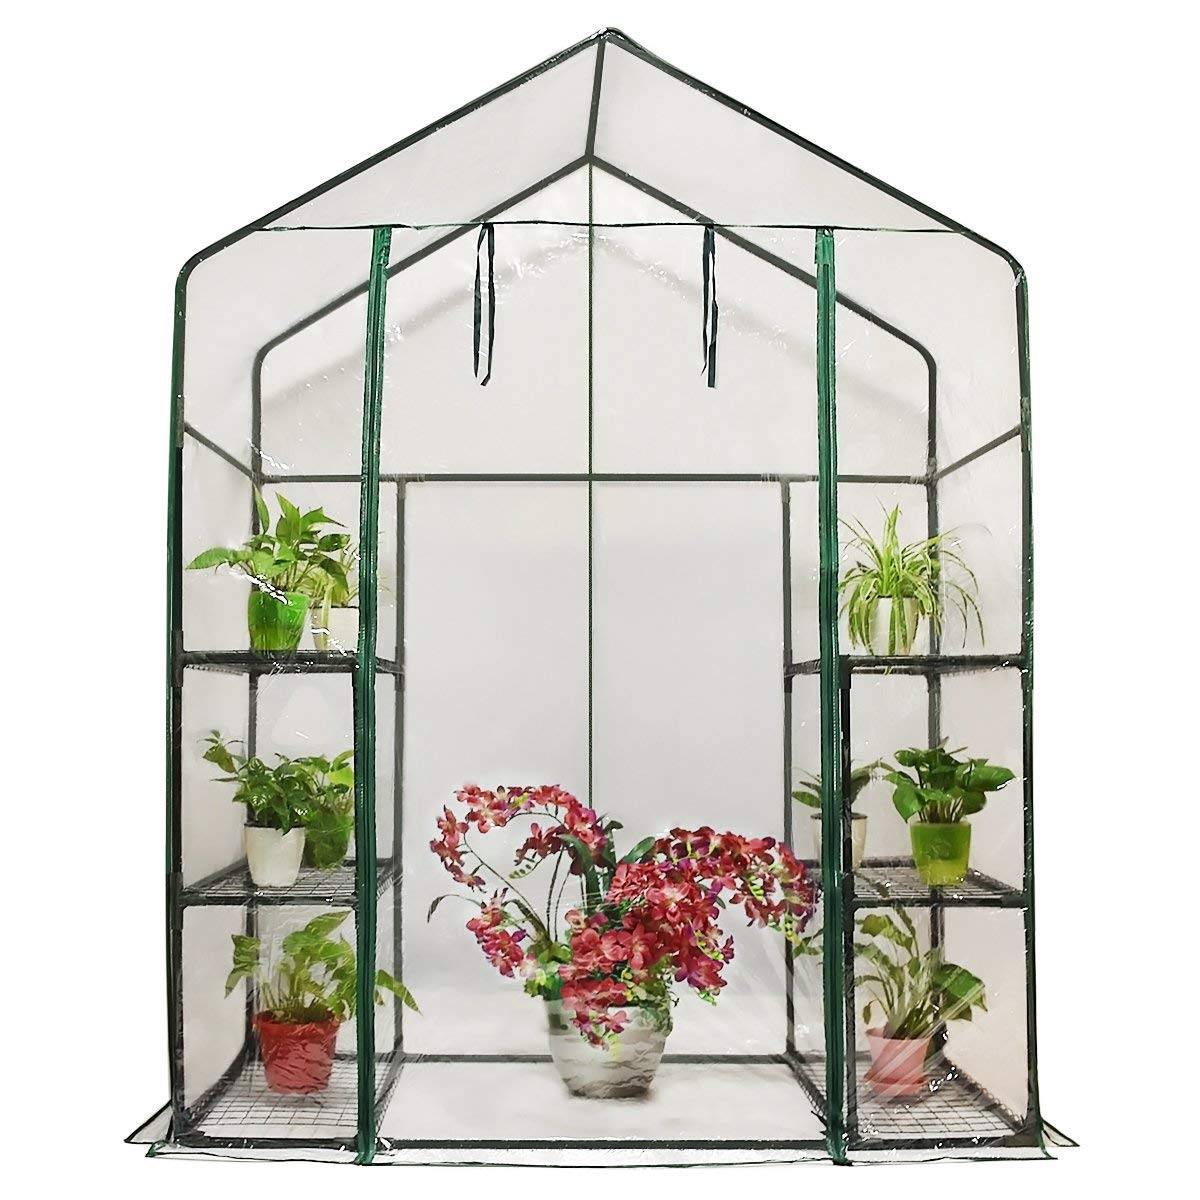 Quictent Greenhouse Mini Walk-in 3 Tiers 6 Shelves 102lbs Max Weight Capacity Portable Plant Garden Outdoor Green House 56 x29 x77